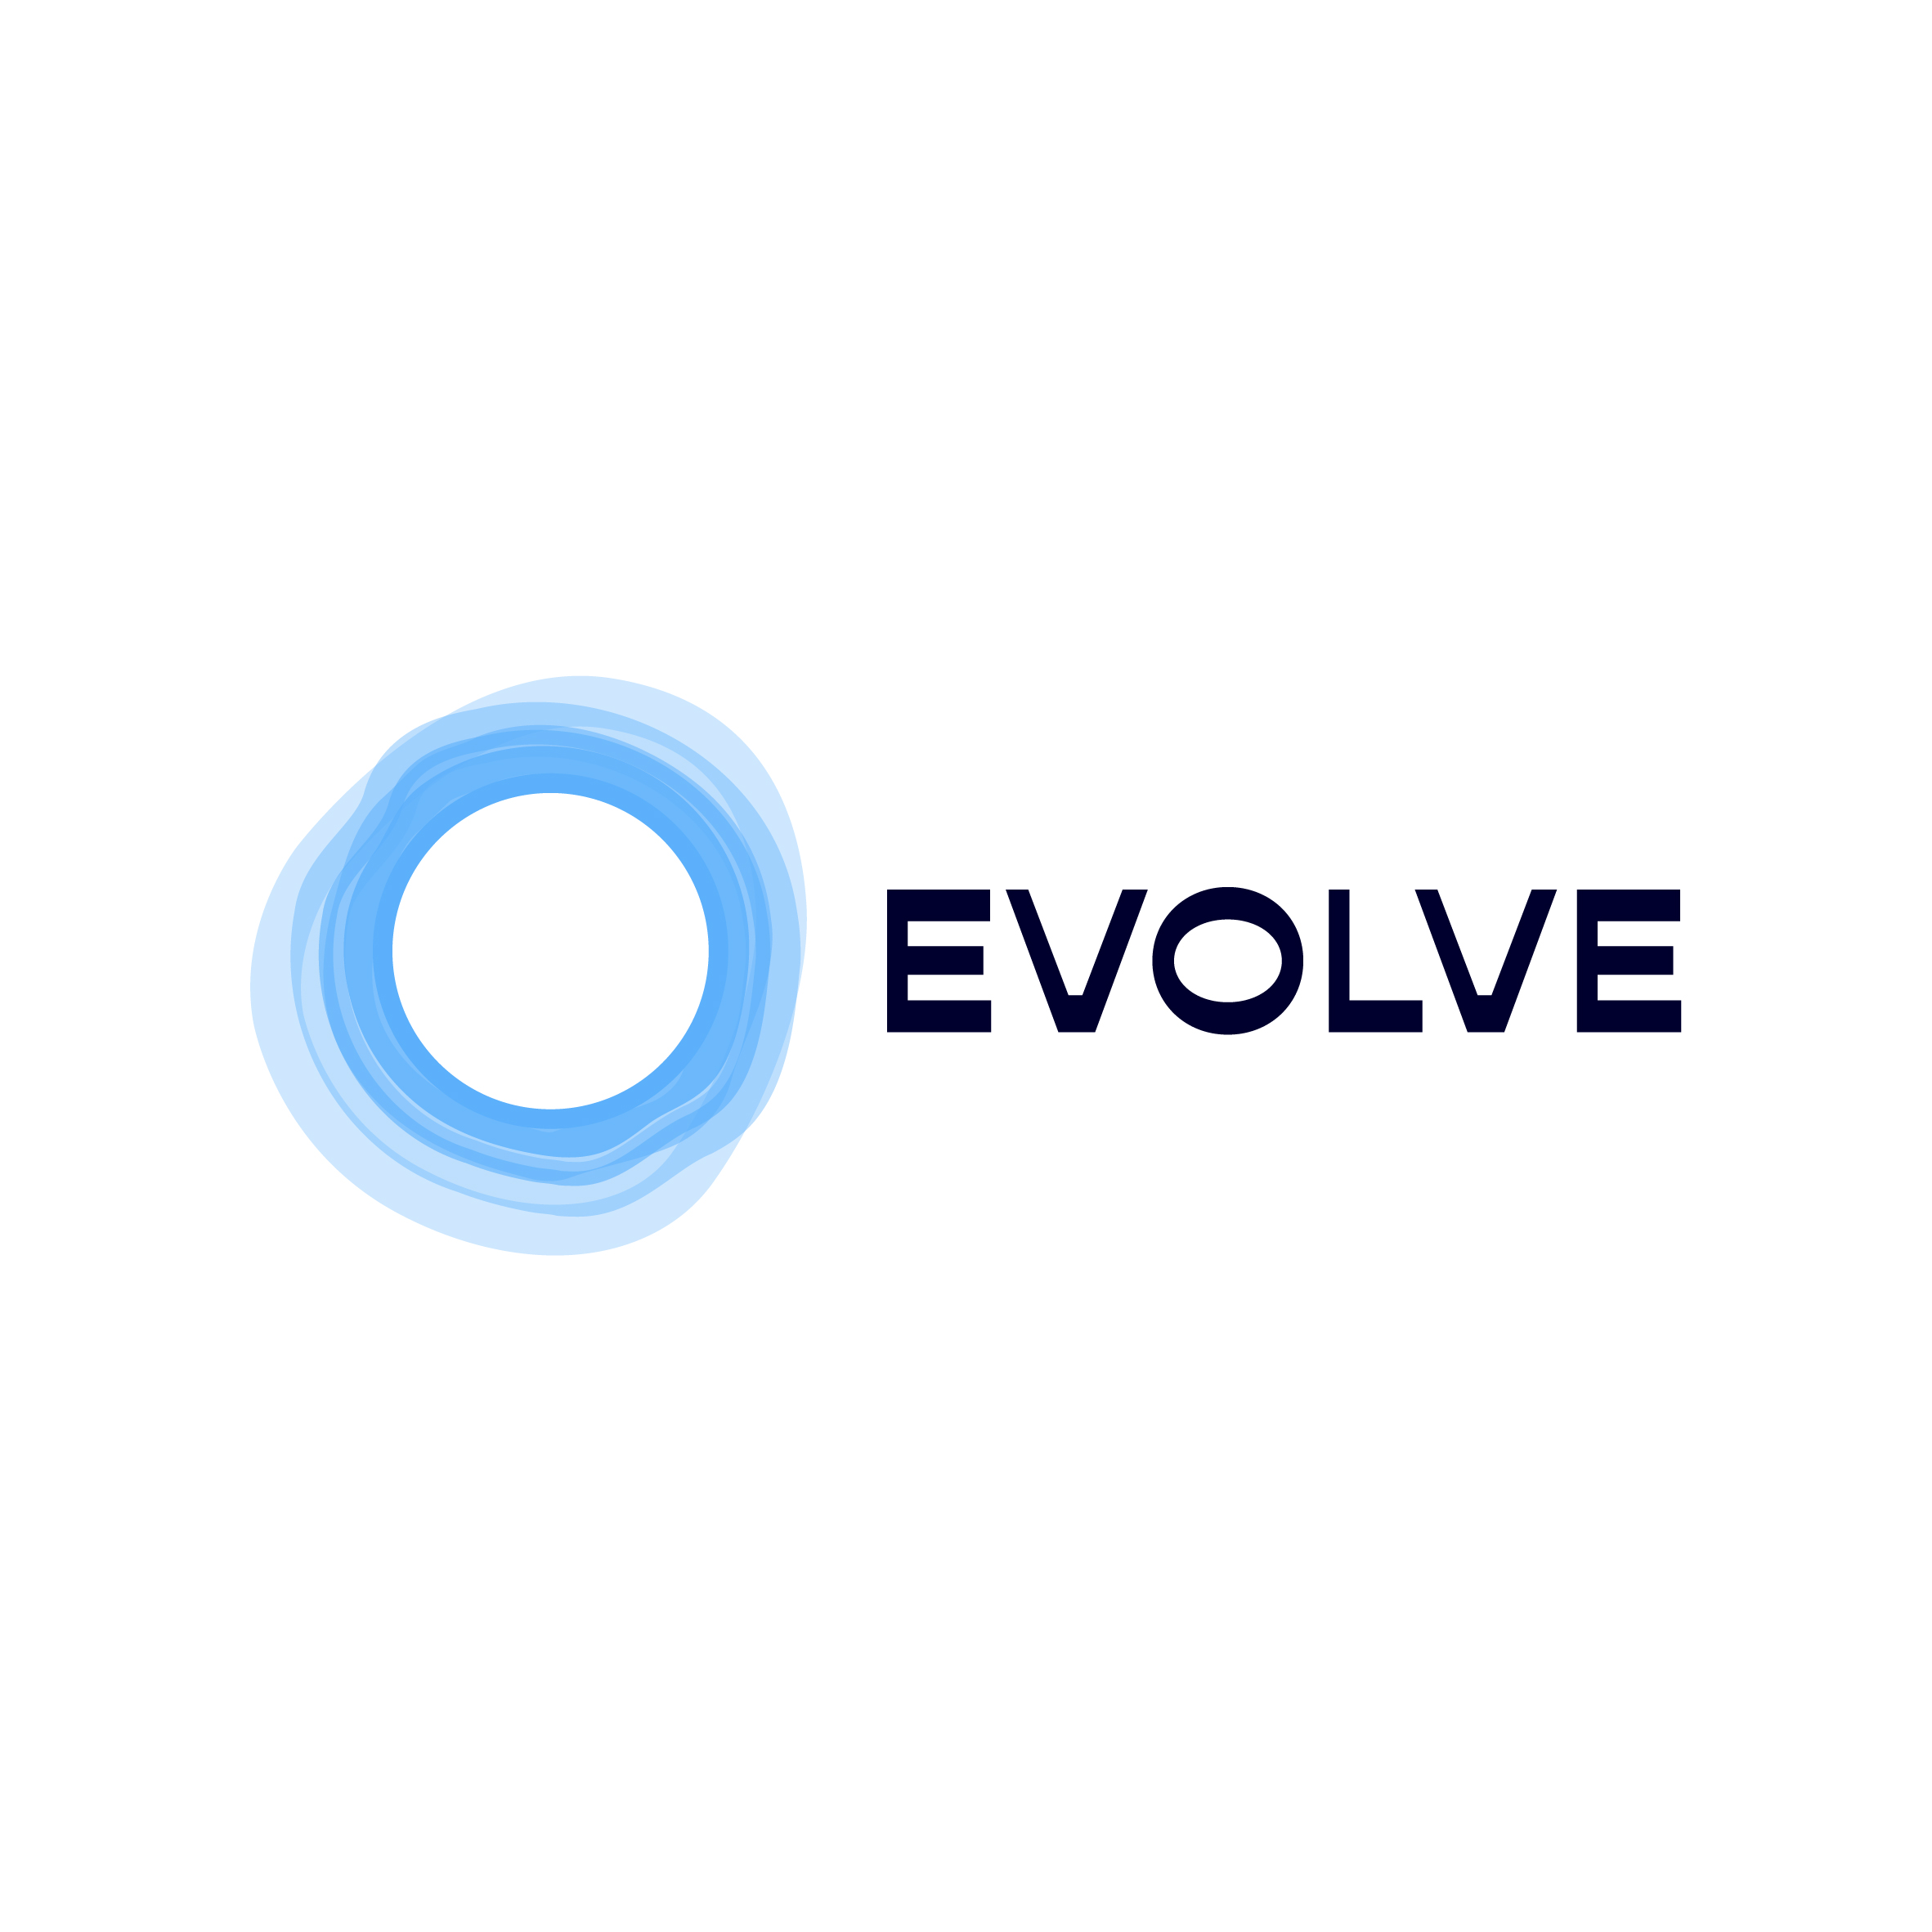 Evolve building advanced pharma lab in Ghana